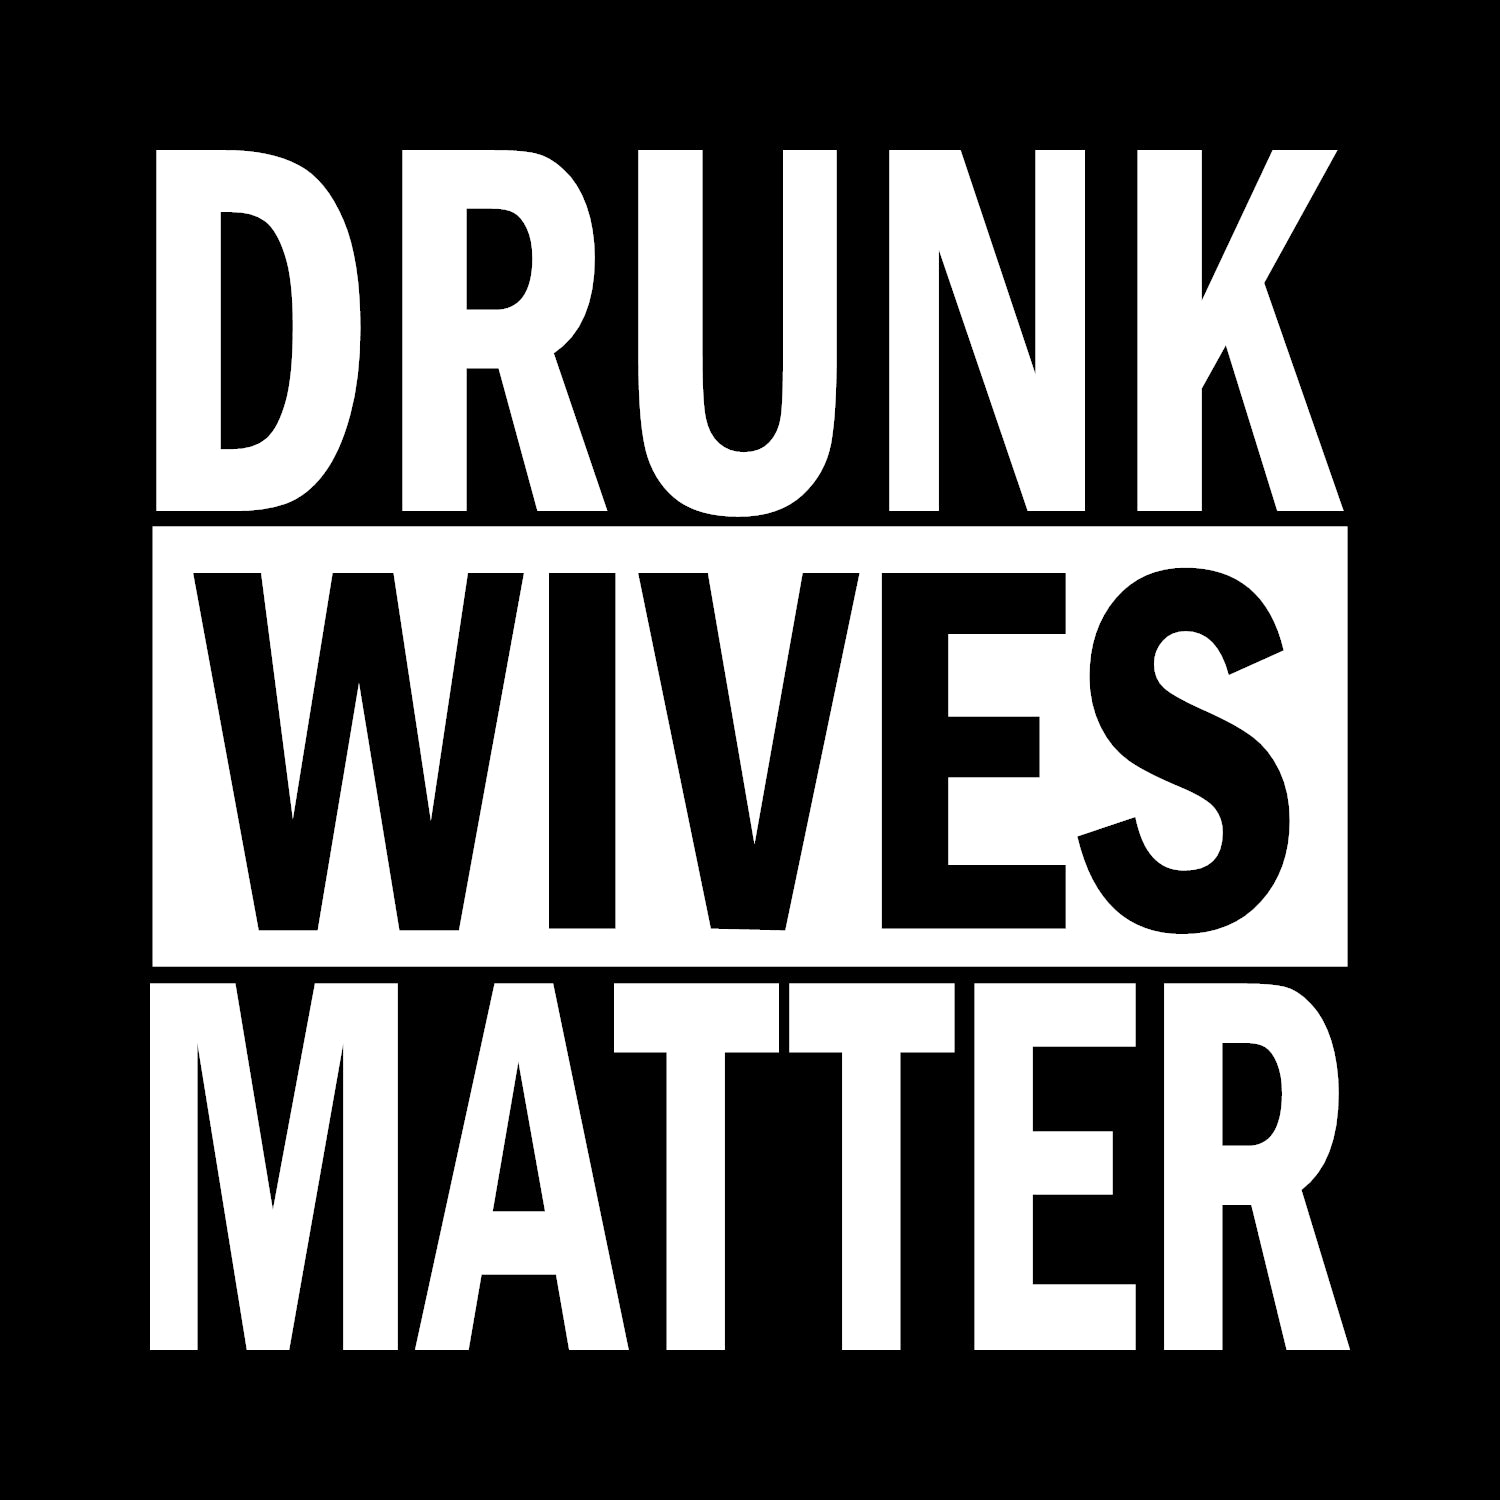 Drunk Wives Matter - Voodoo Graphx